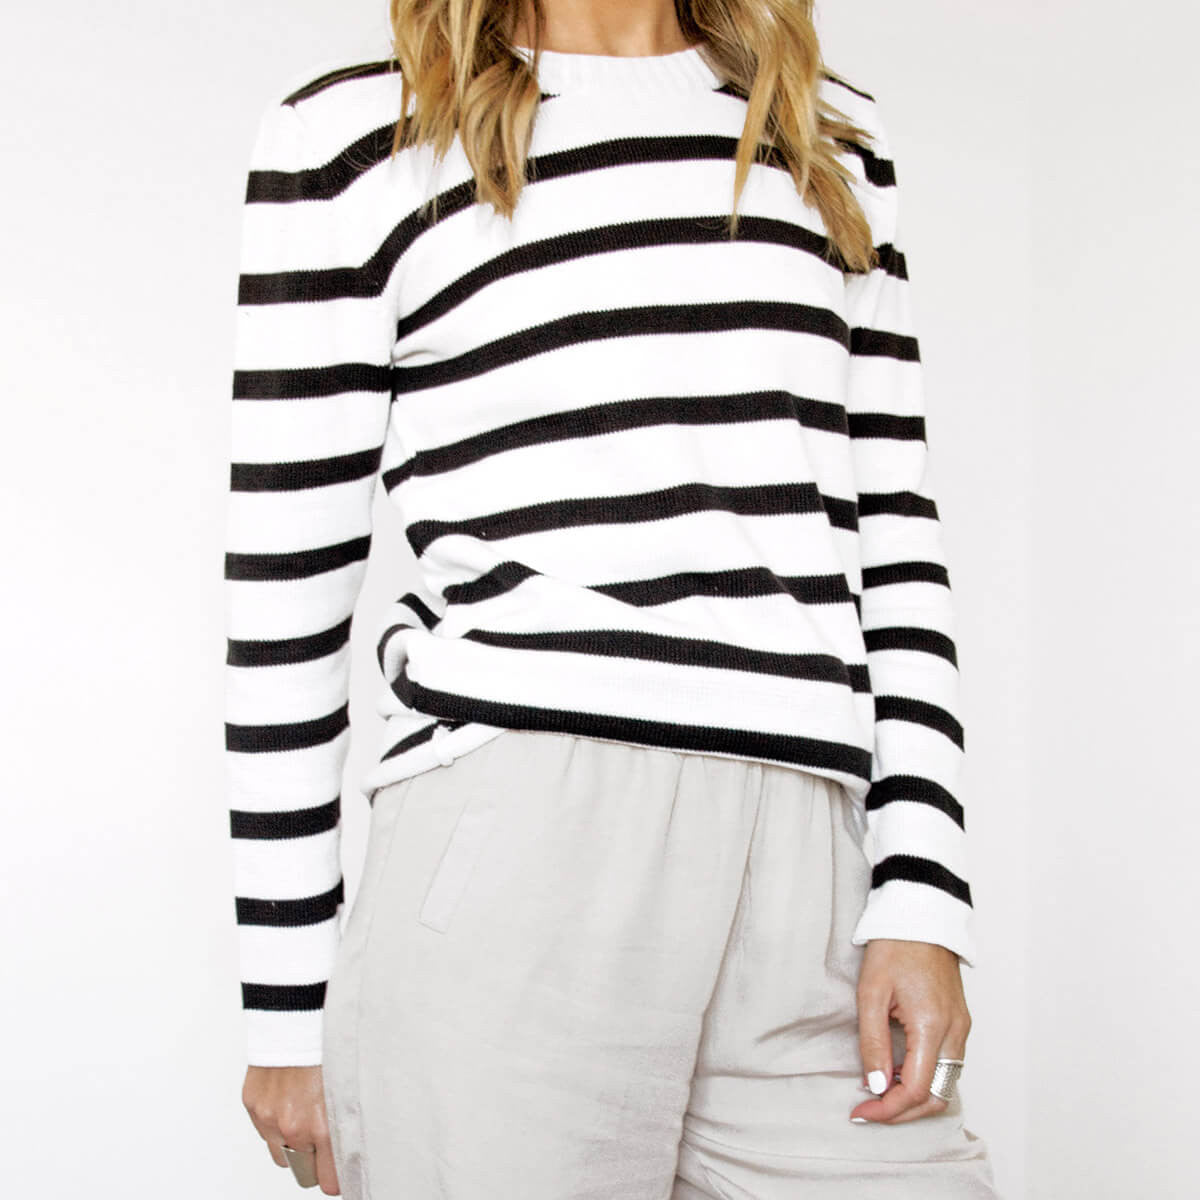 An Ethical, Seasonless Clothing Collection for Women on the Go - Tofino Striped Knit Sweater, Sololu